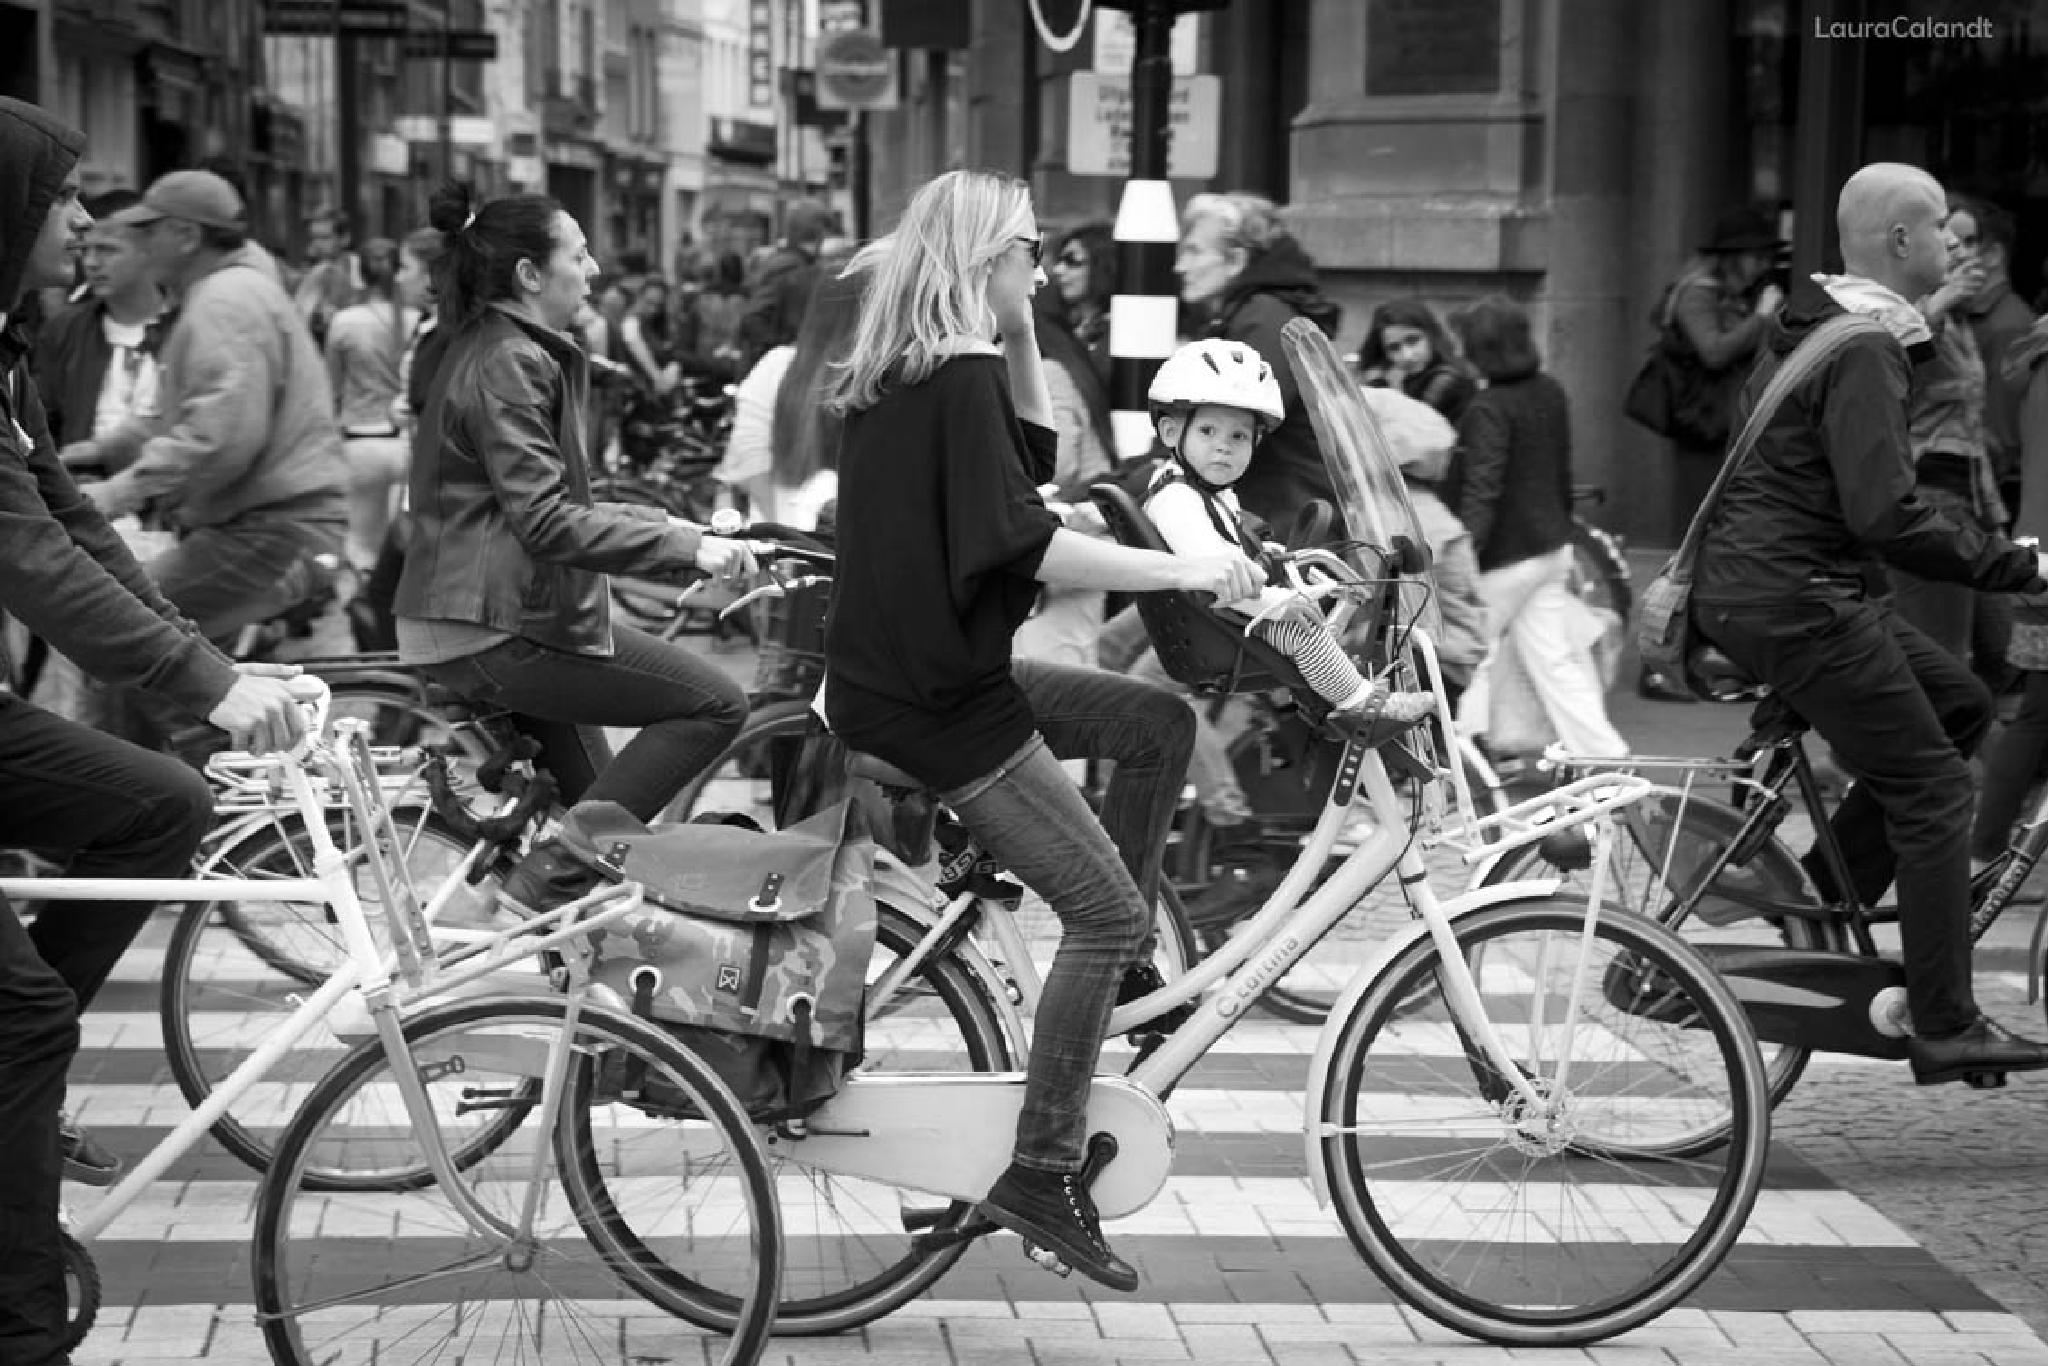 All the bikes by Laura Calandt